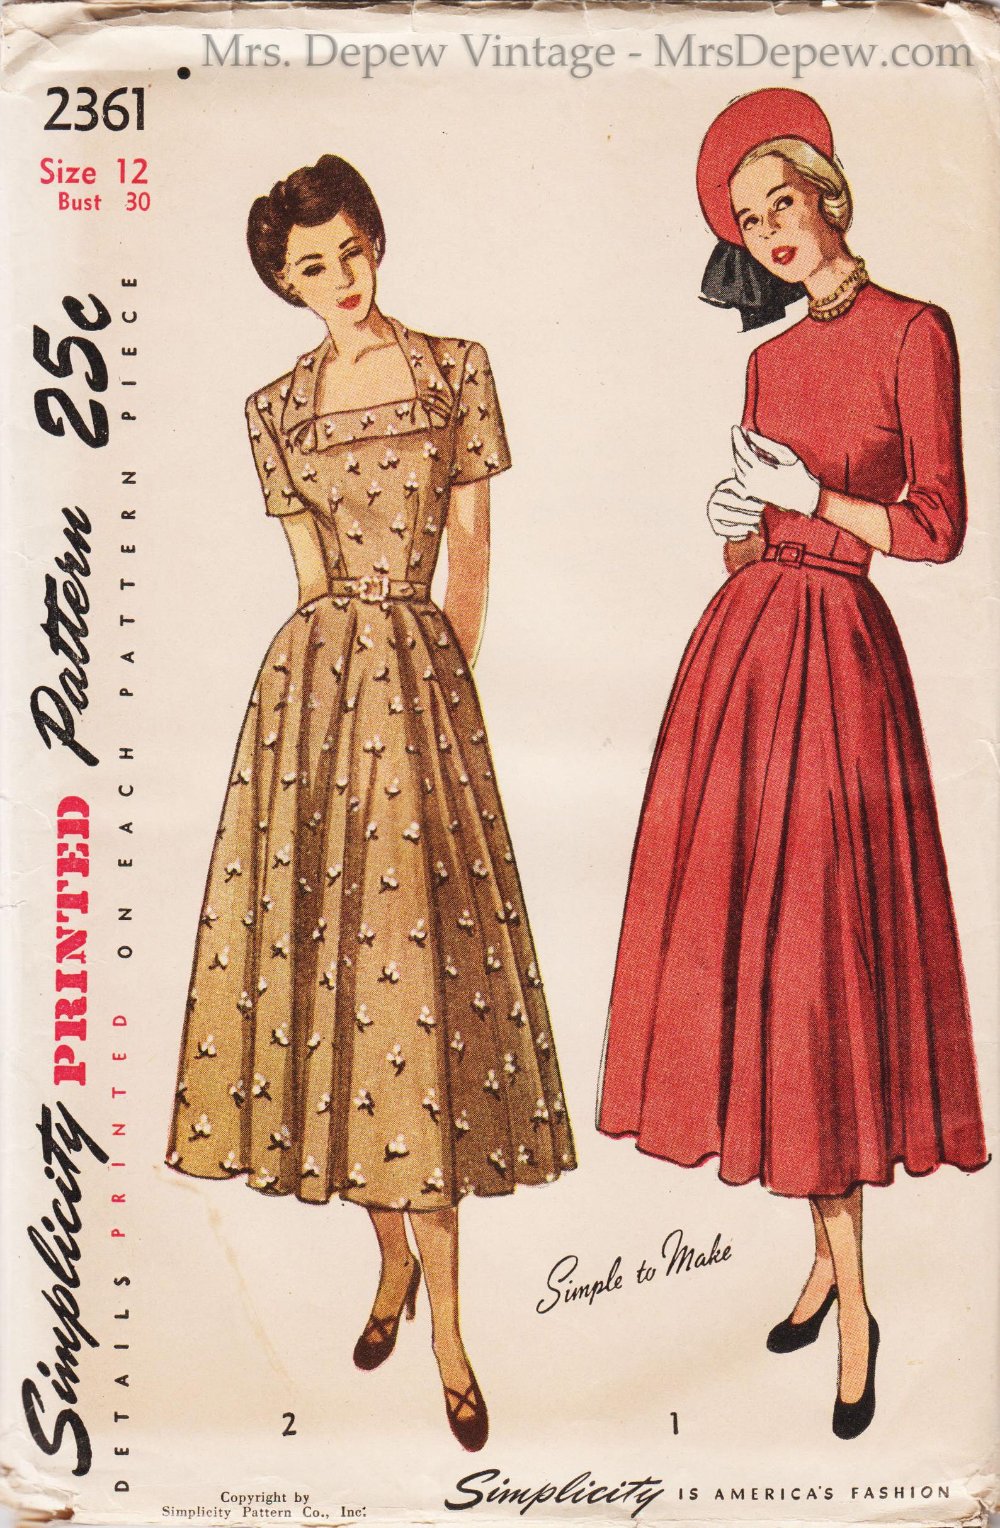 Vintage Sewing Pattern Simplicity 2361 Dress And Bolero 1940s 30 Bust With Free Pattern Grading E Book Included In 2021 Vintage Dress Sewing Patterns 1940s Dress Pattern 1940s Fashion